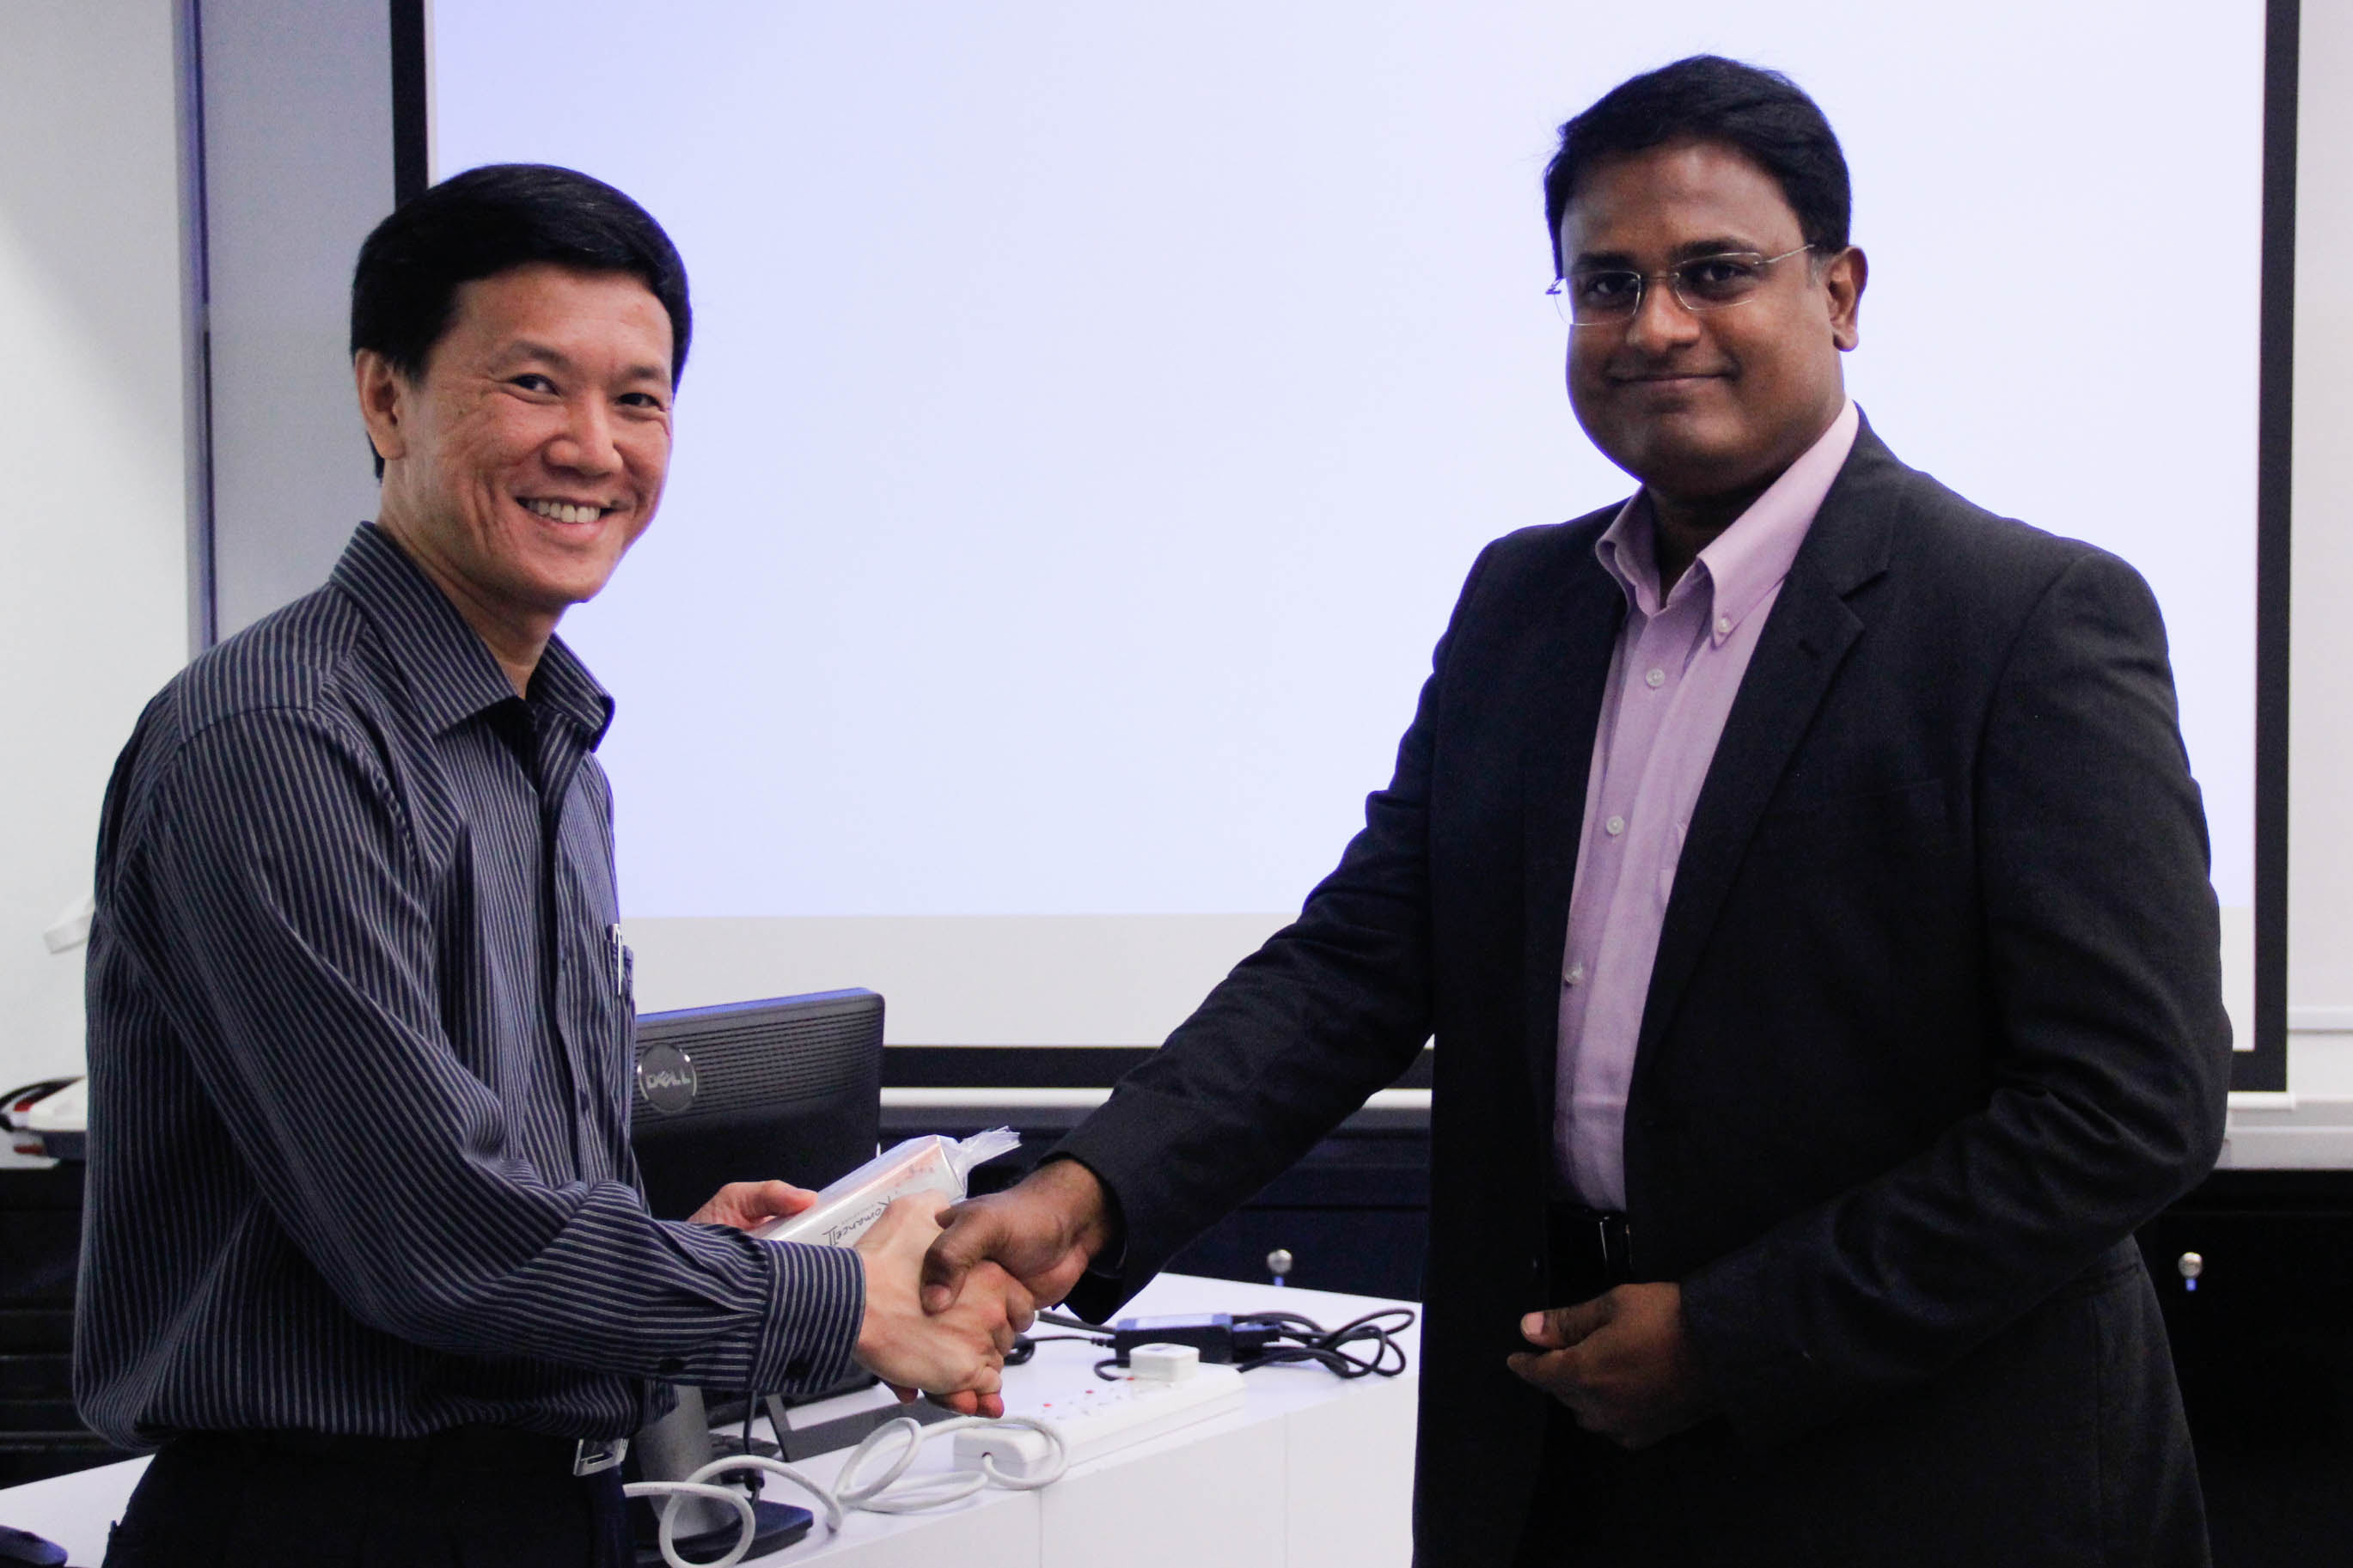 Mr Liew presenting a token of appreciation to Mr Sheik